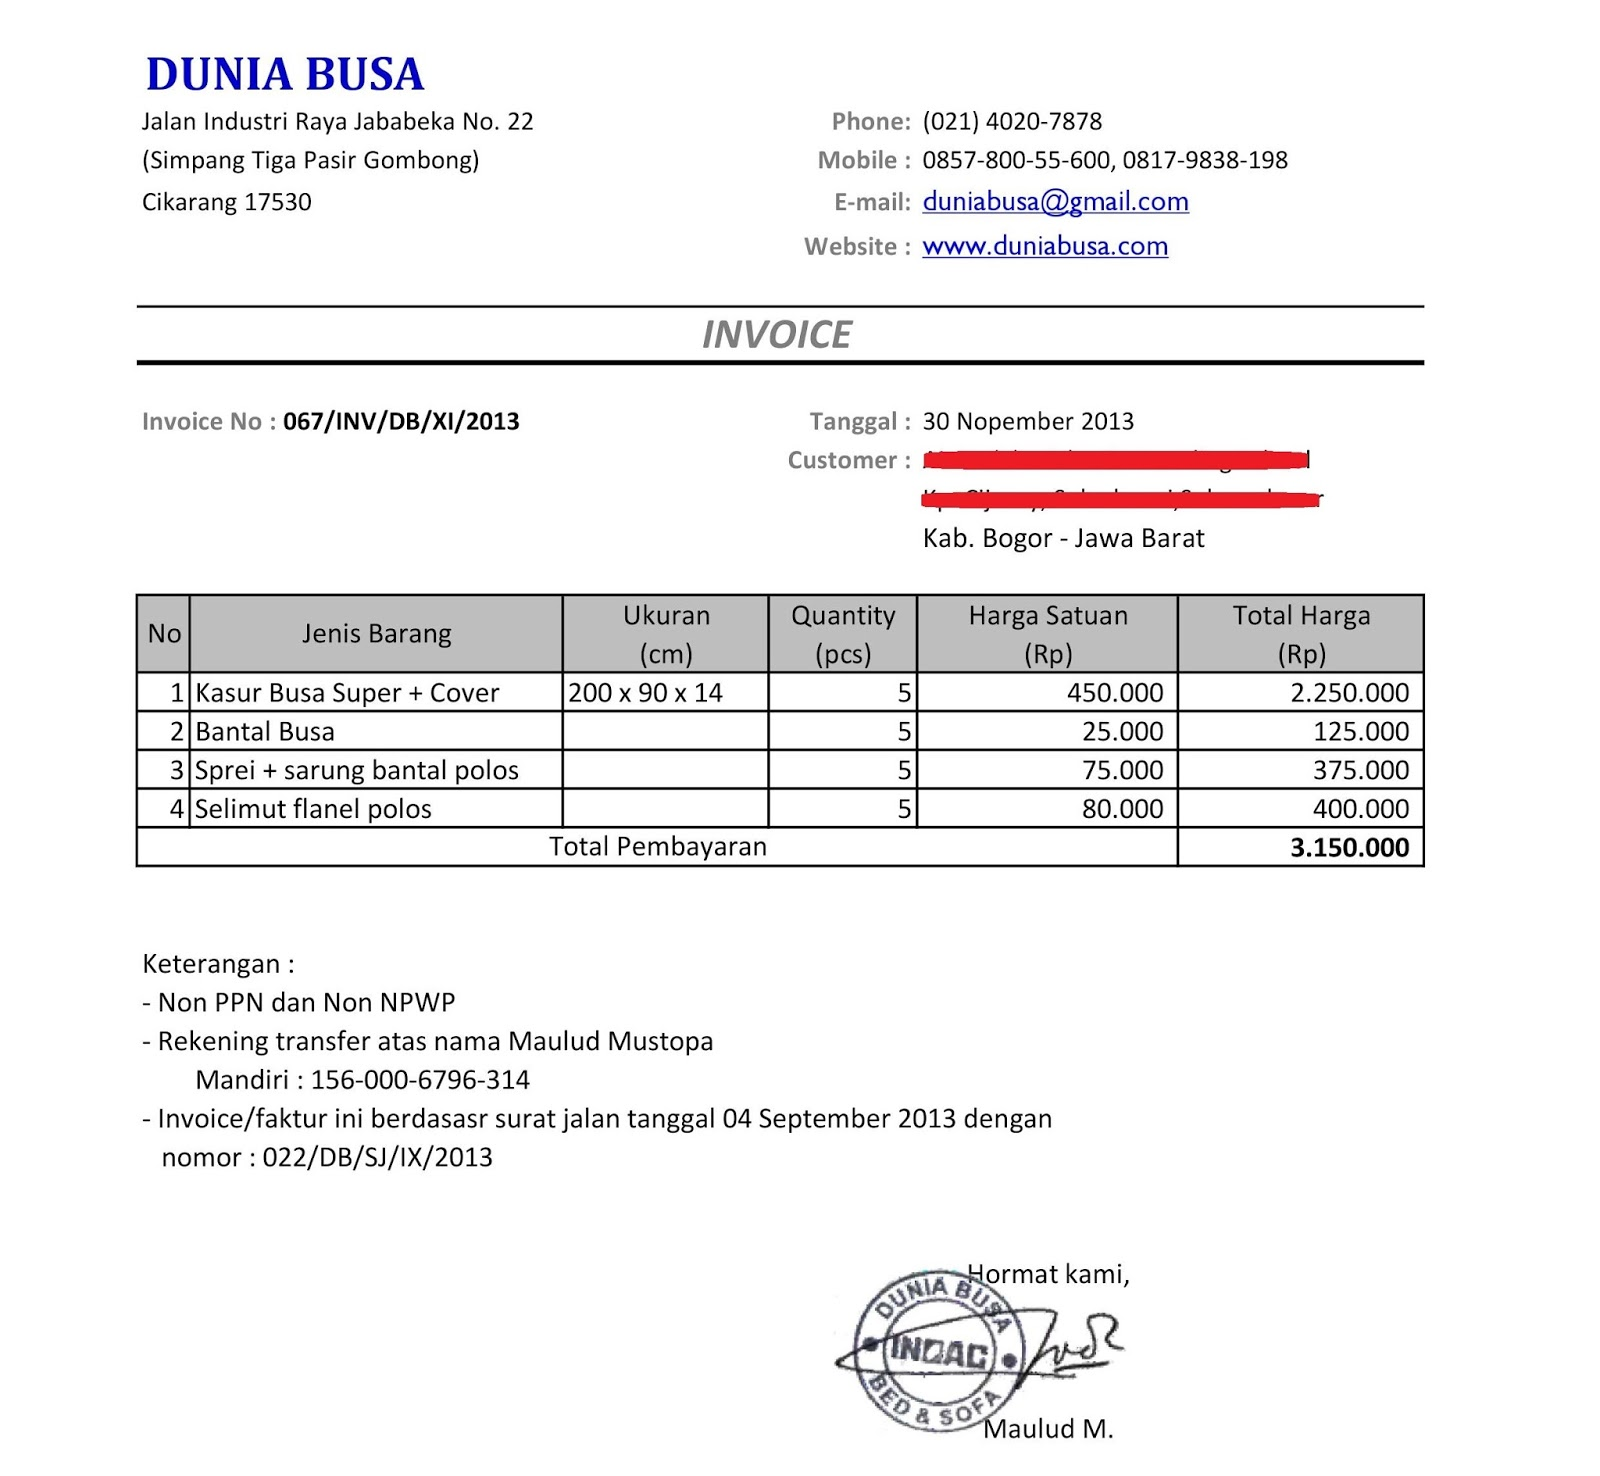 Aldiablosus  Unusual Free Invoice Online  Create Invoice Online  Invoice Template  With Exquisite Contoh Format Invoice Atau Surat Tagihan  Brankas Arsip  Free Invoice Online With Appealing Easy Online Invoice Also Invoice Discounting Vs Factoring In Addition What Does Invoice Mean In Accounting And Invoice Pdf Download As Well As How To Create An Invoice In Microsoft Word Additionally Software Invoice Gratis From Sklepco With Aldiablosus  Exquisite Free Invoice Online  Create Invoice Online  Invoice Template  With Appealing Contoh Format Invoice Atau Surat Tagihan  Brankas Arsip  Free Invoice Online And Unusual Easy Online Invoice Also Invoice Discounting Vs Factoring In Addition What Does Invoice Mean In Accounting From Sklepco